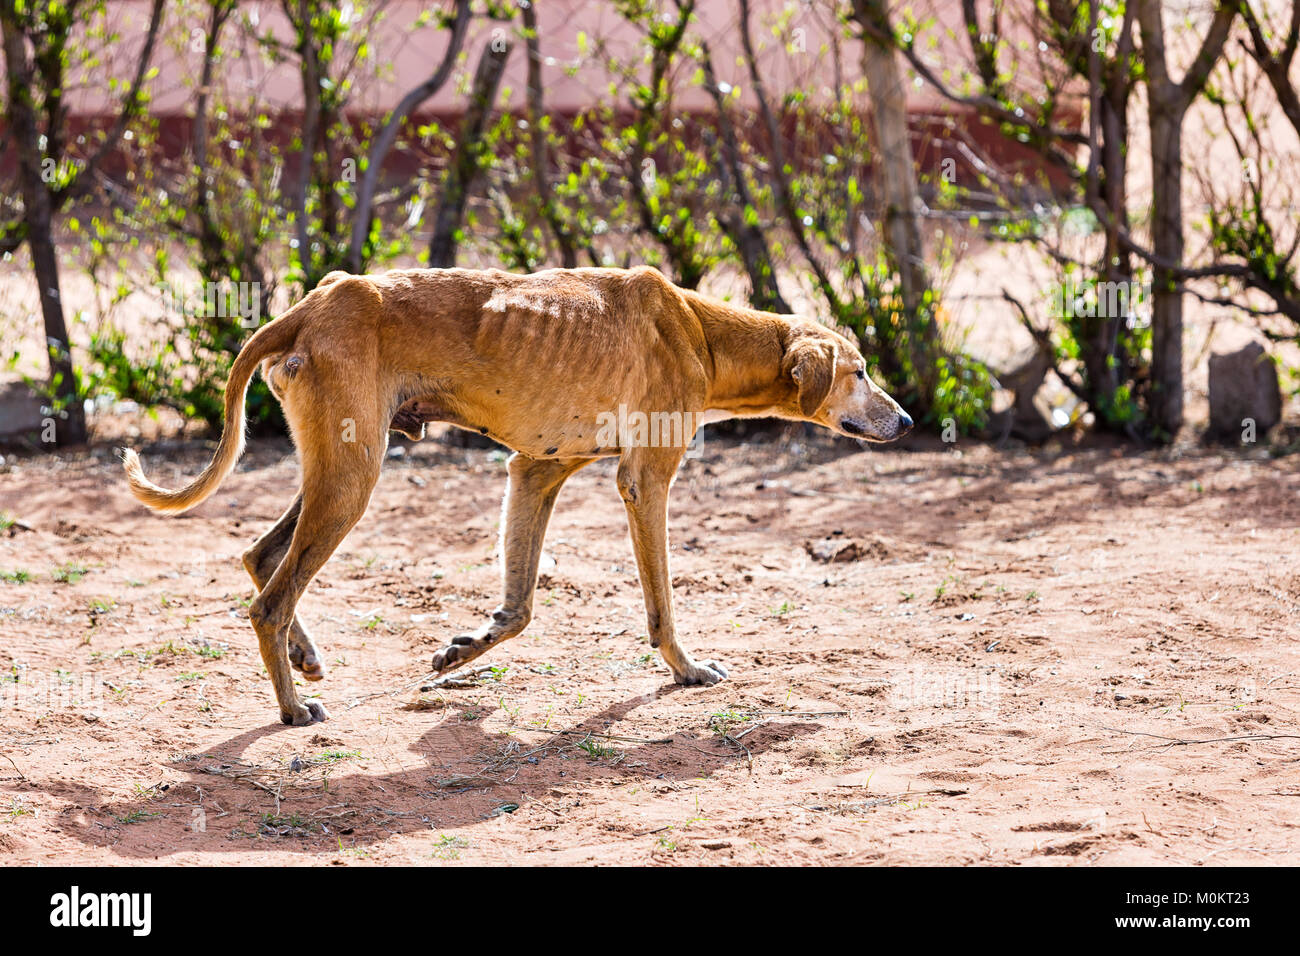 starving dog wounded and infested with fleas and ticks, animal cruelty Stock Photo